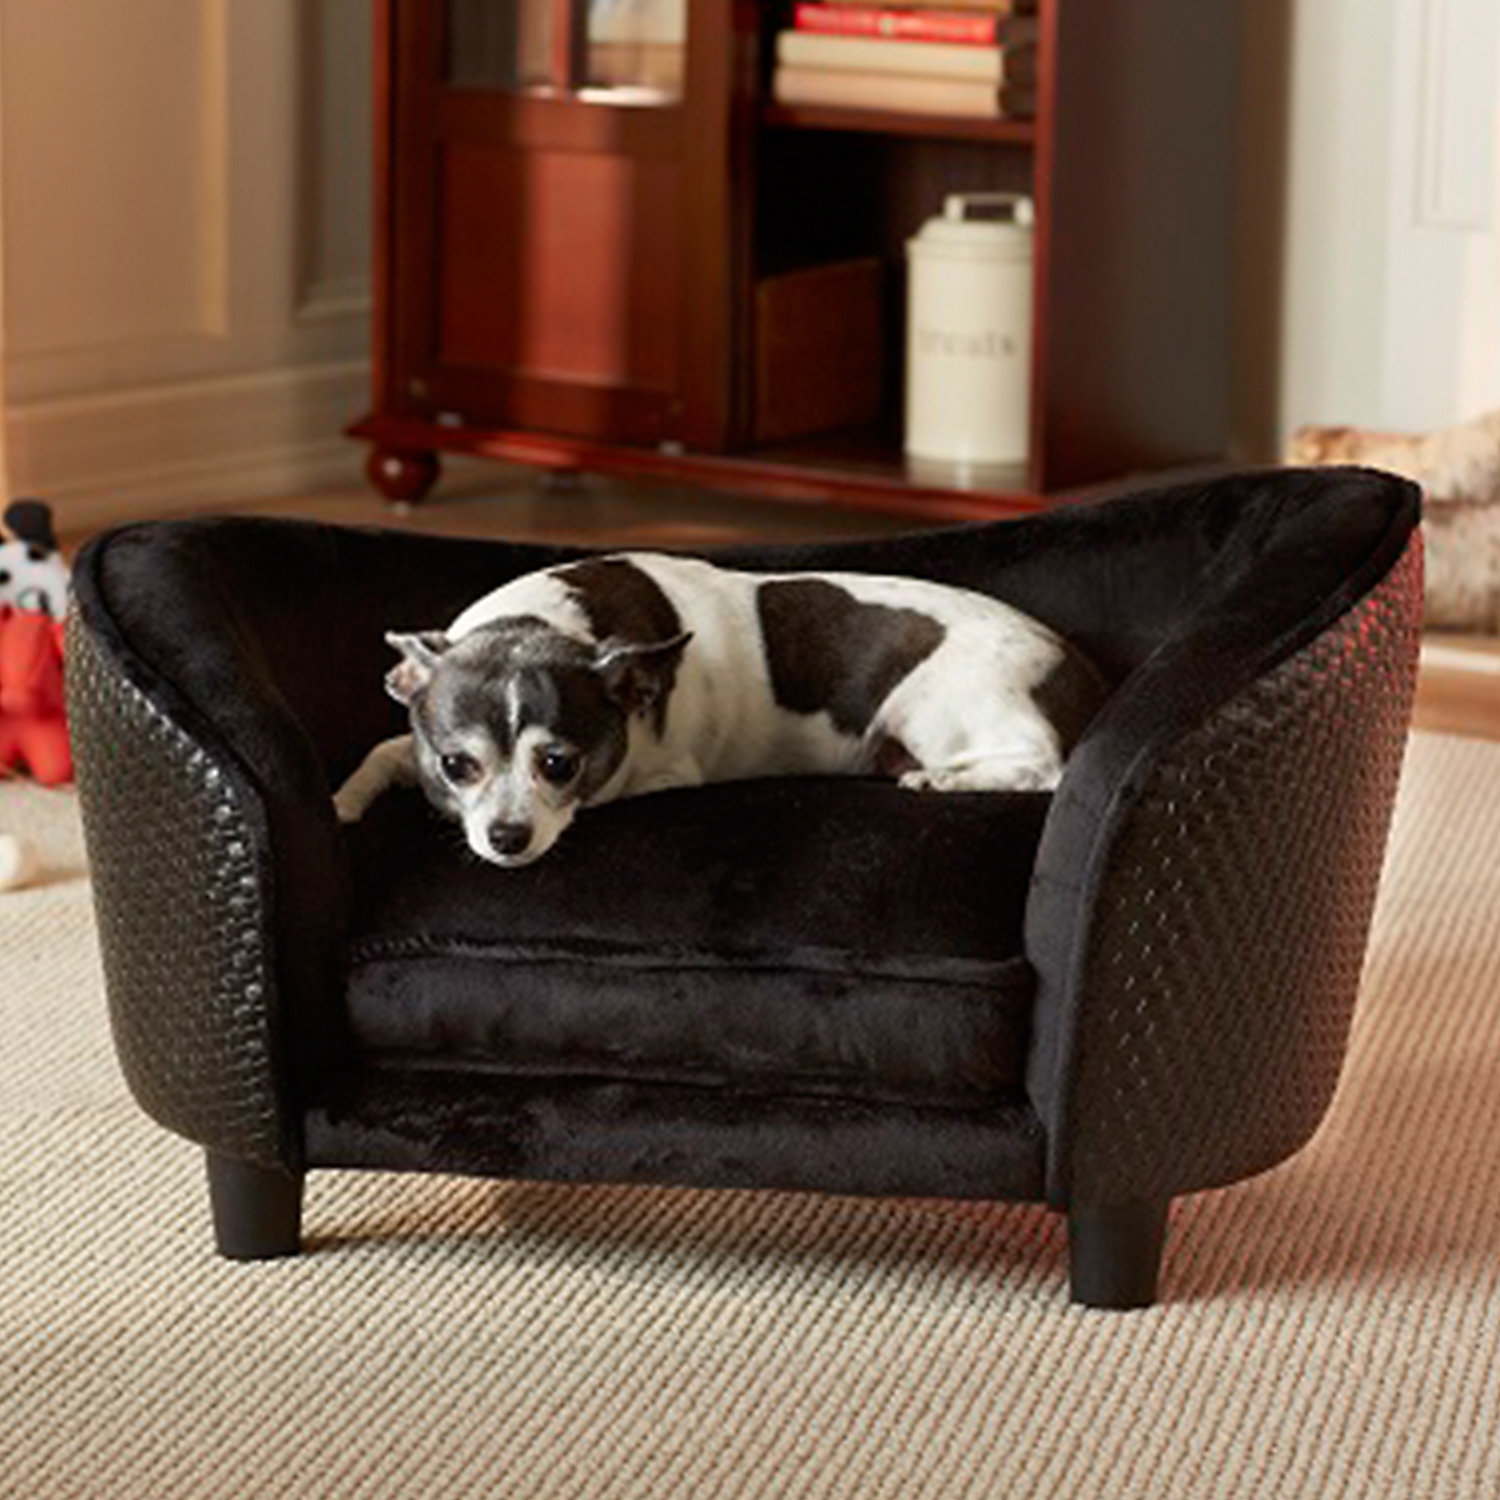 Enchanted Home Pet Ultra Basketweave Plush Dog Bed in Black 26.5 x 16 Small